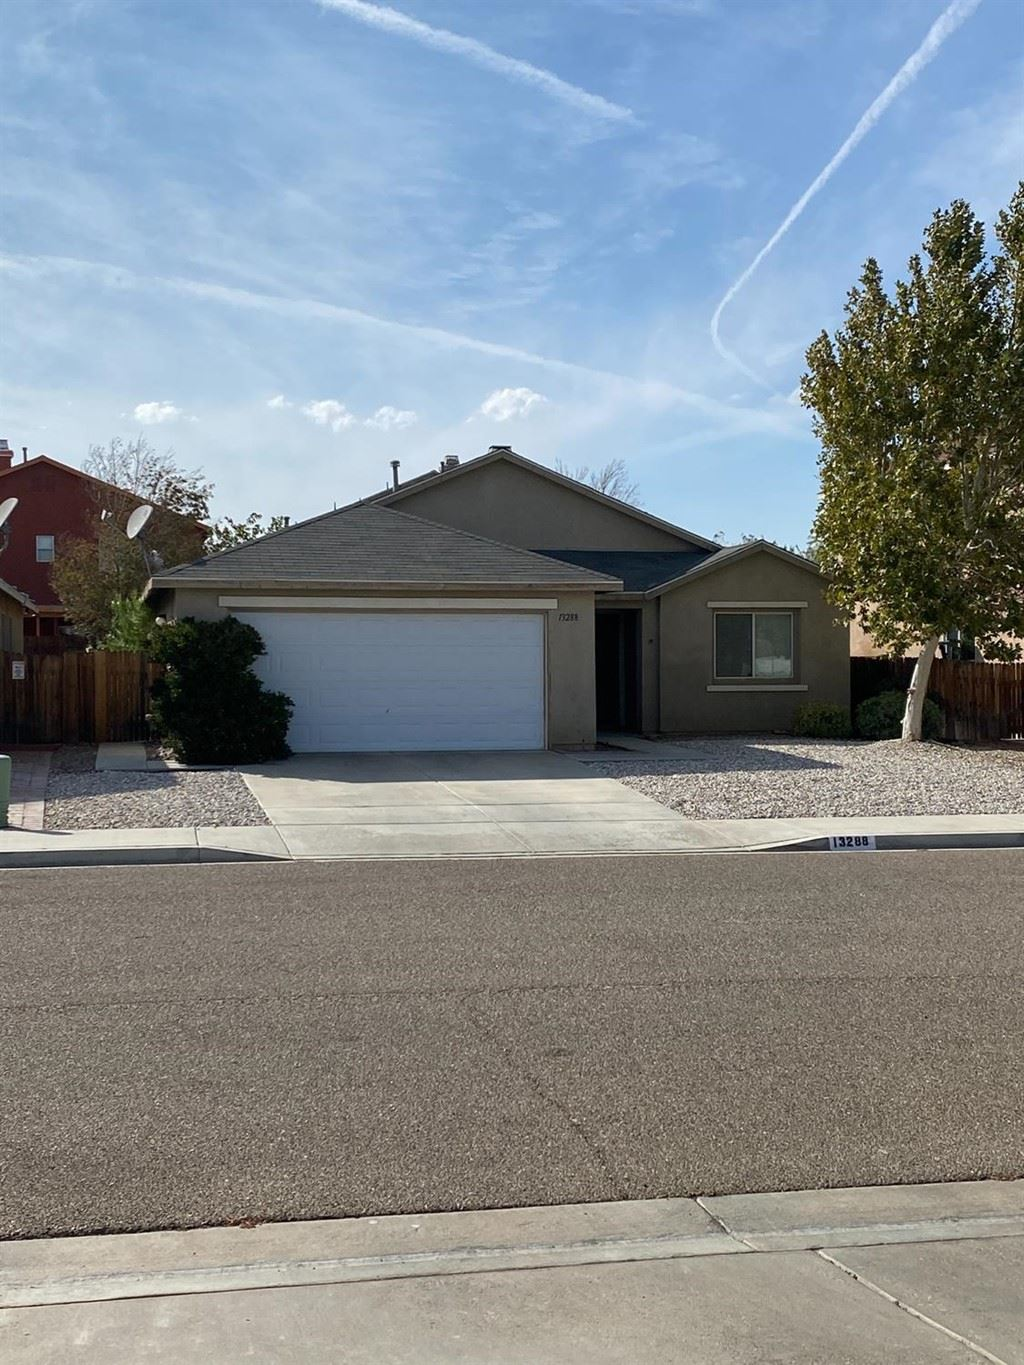 13288 Spicewood Court, Victorville, CA 92392 - MLS#: 539870